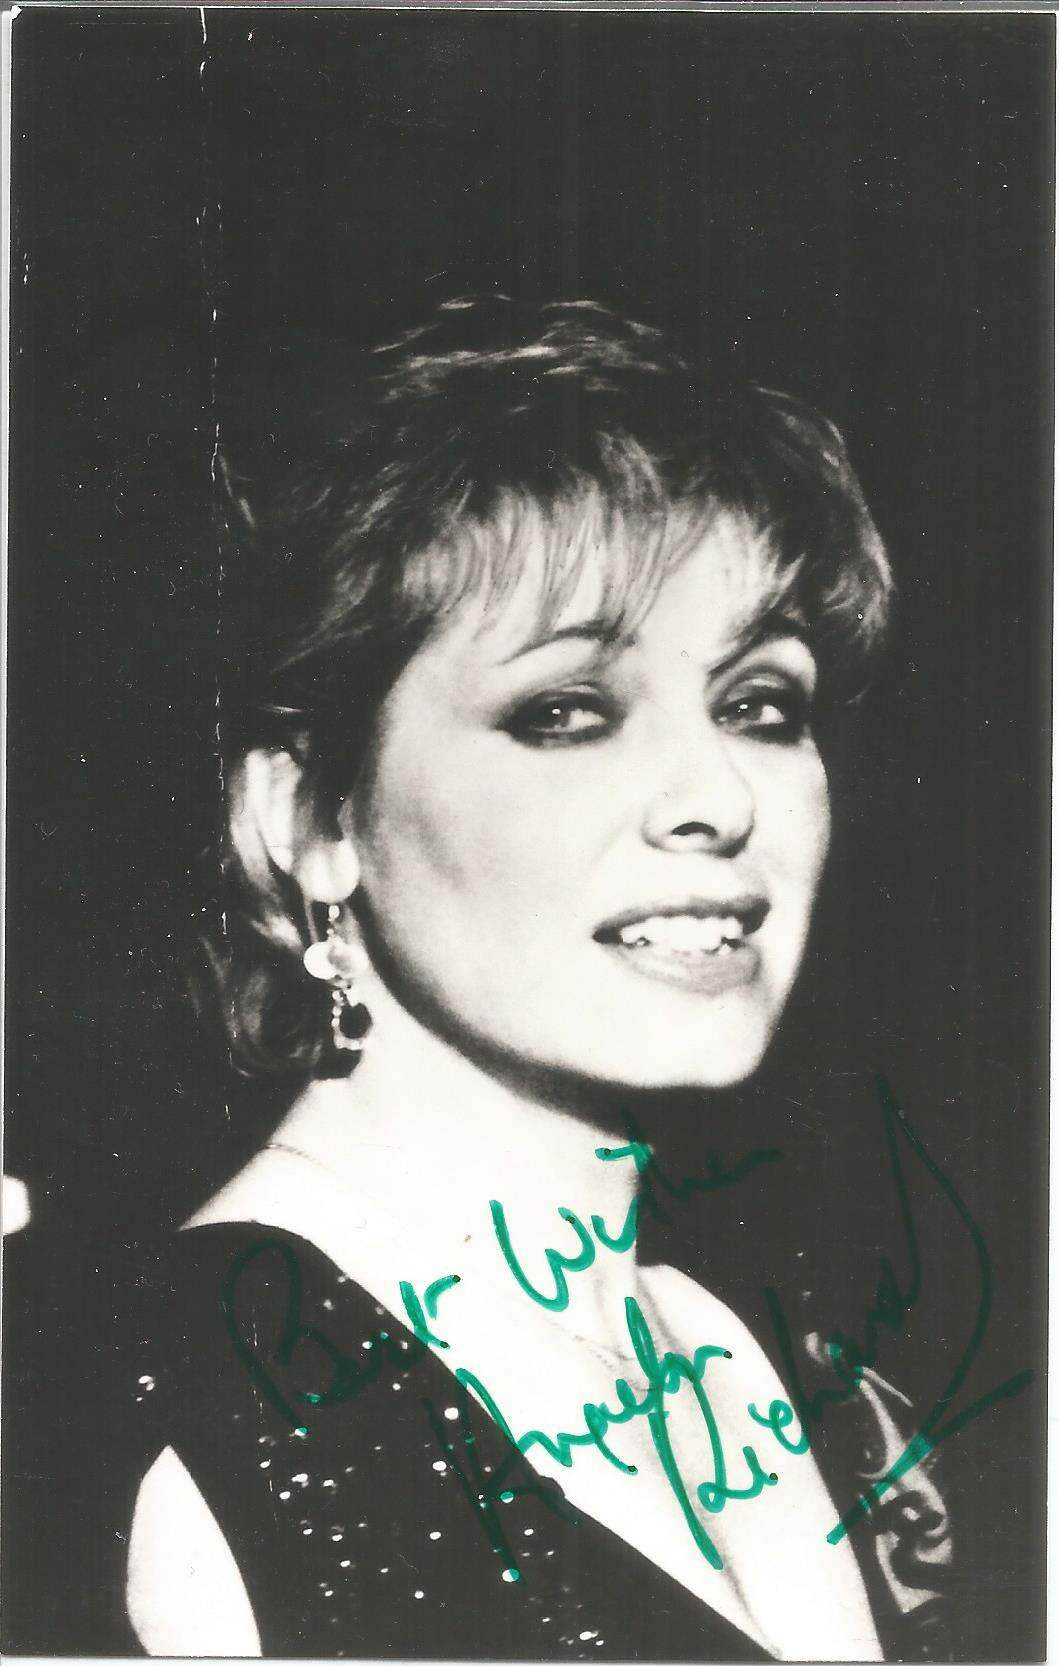 Angela Richards 6x4 signed and inscribed black and white photograph. Richards is an English